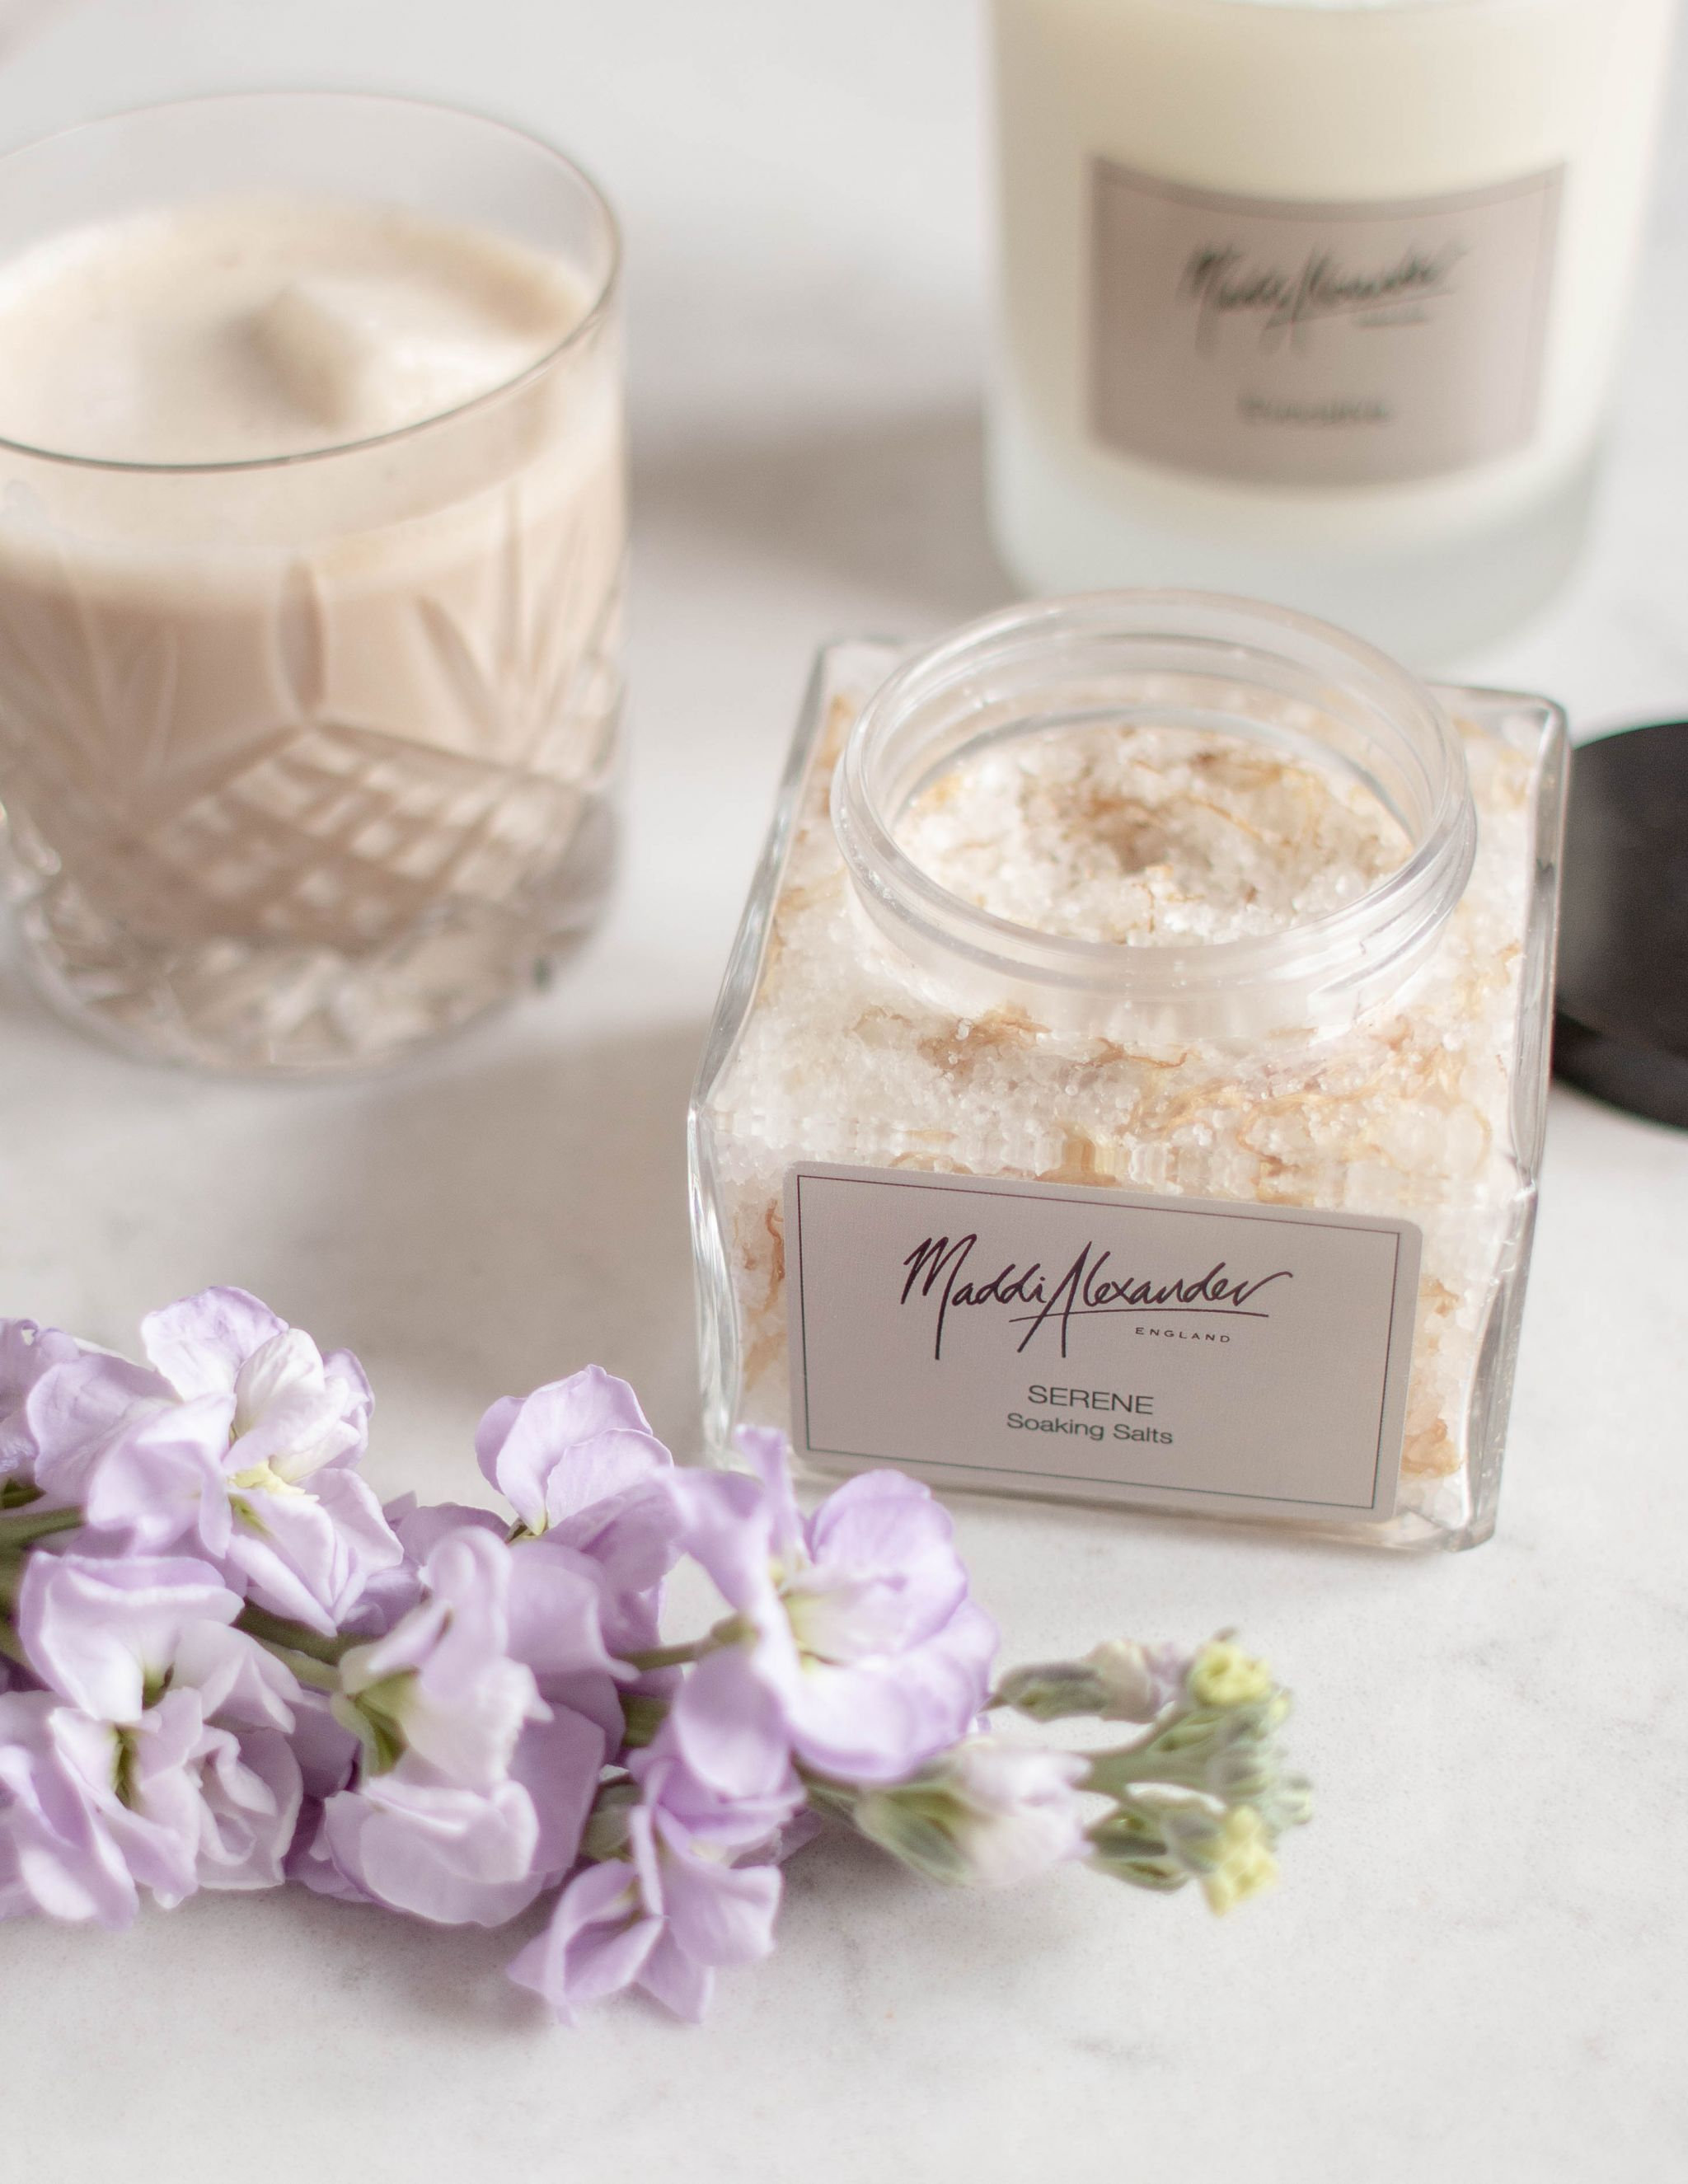 Maddi Alexander Social Media Photography Lifestyle Content Creation bath salts spring flowers